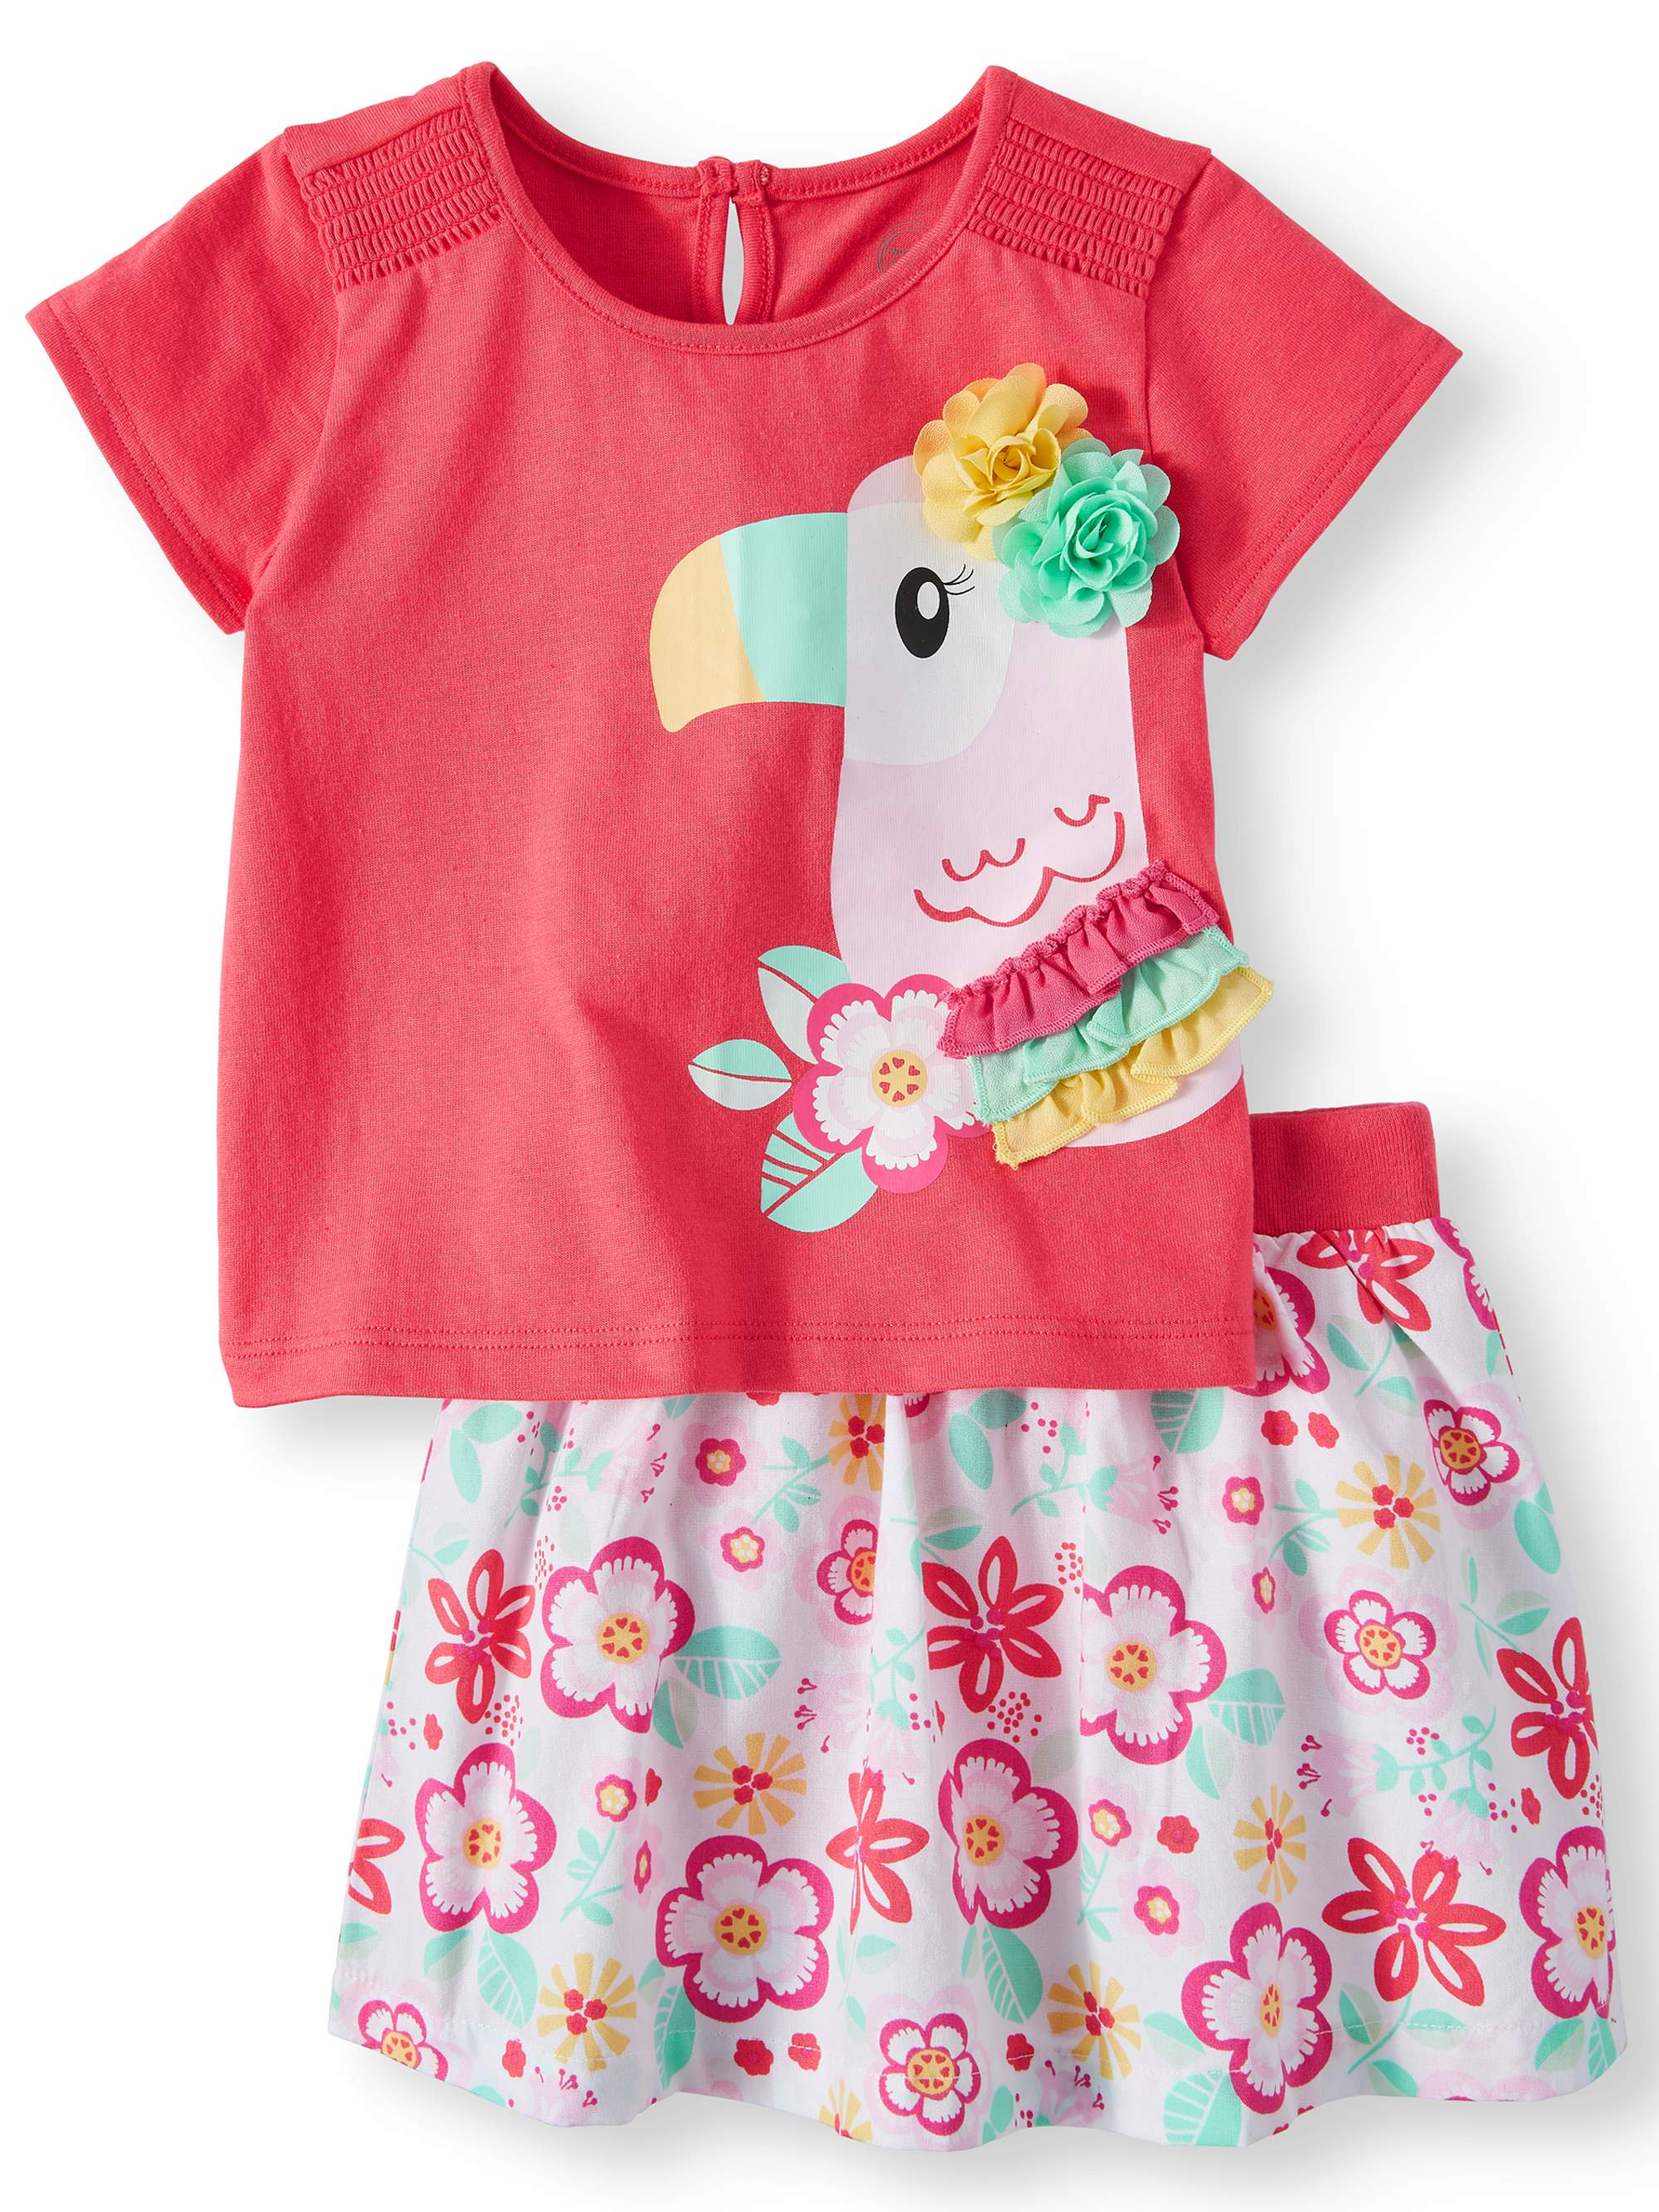 3-D Graphic Toucan T-Shirt & Skirt, 2pc Outfit Set (Baby Girls)